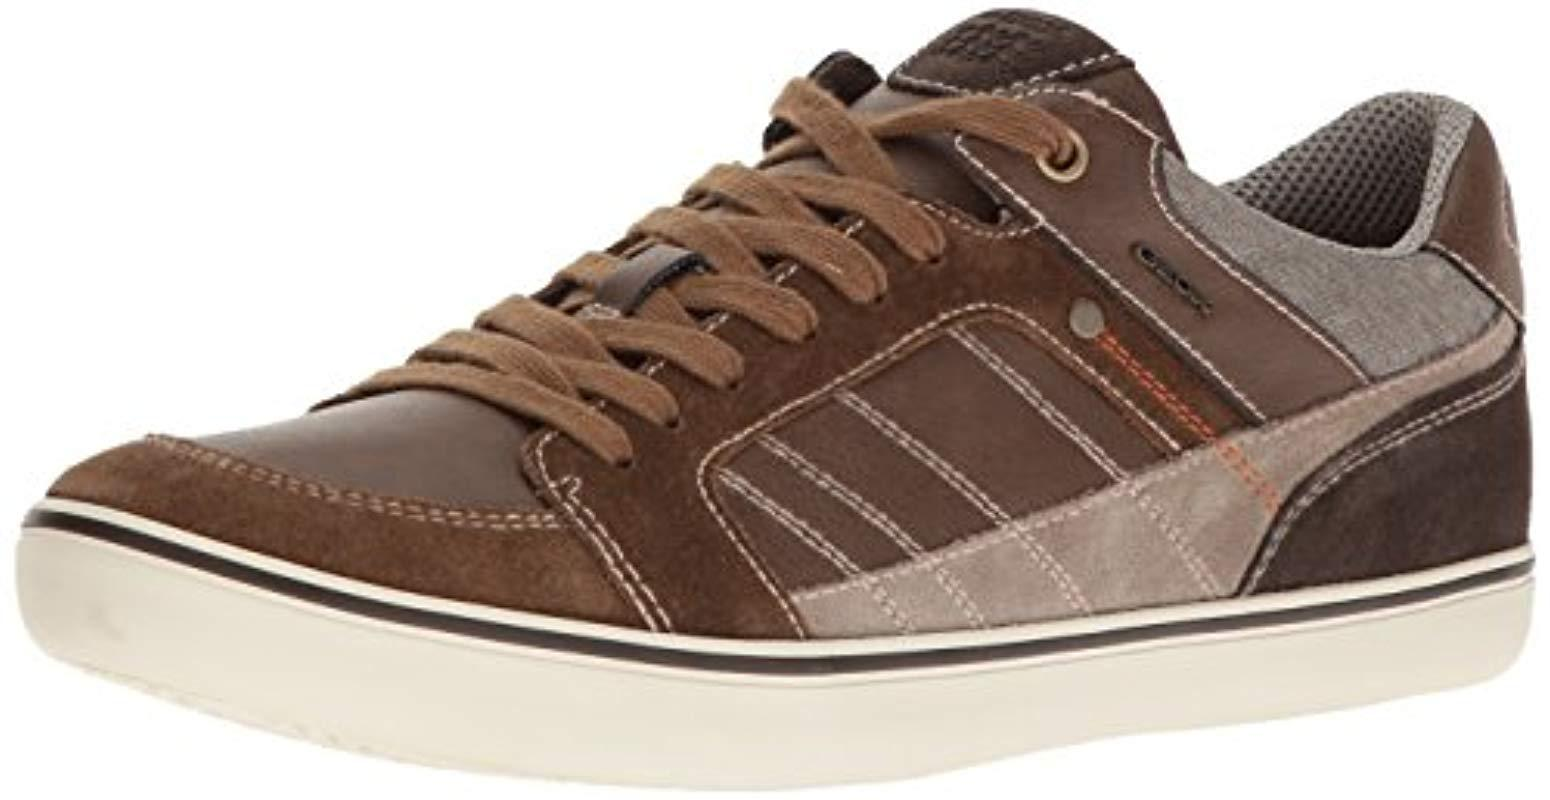 Men Save 50 For Brown Lyst Geox Fashion 0 M Box 25 In Sneaker UzVqSMGp